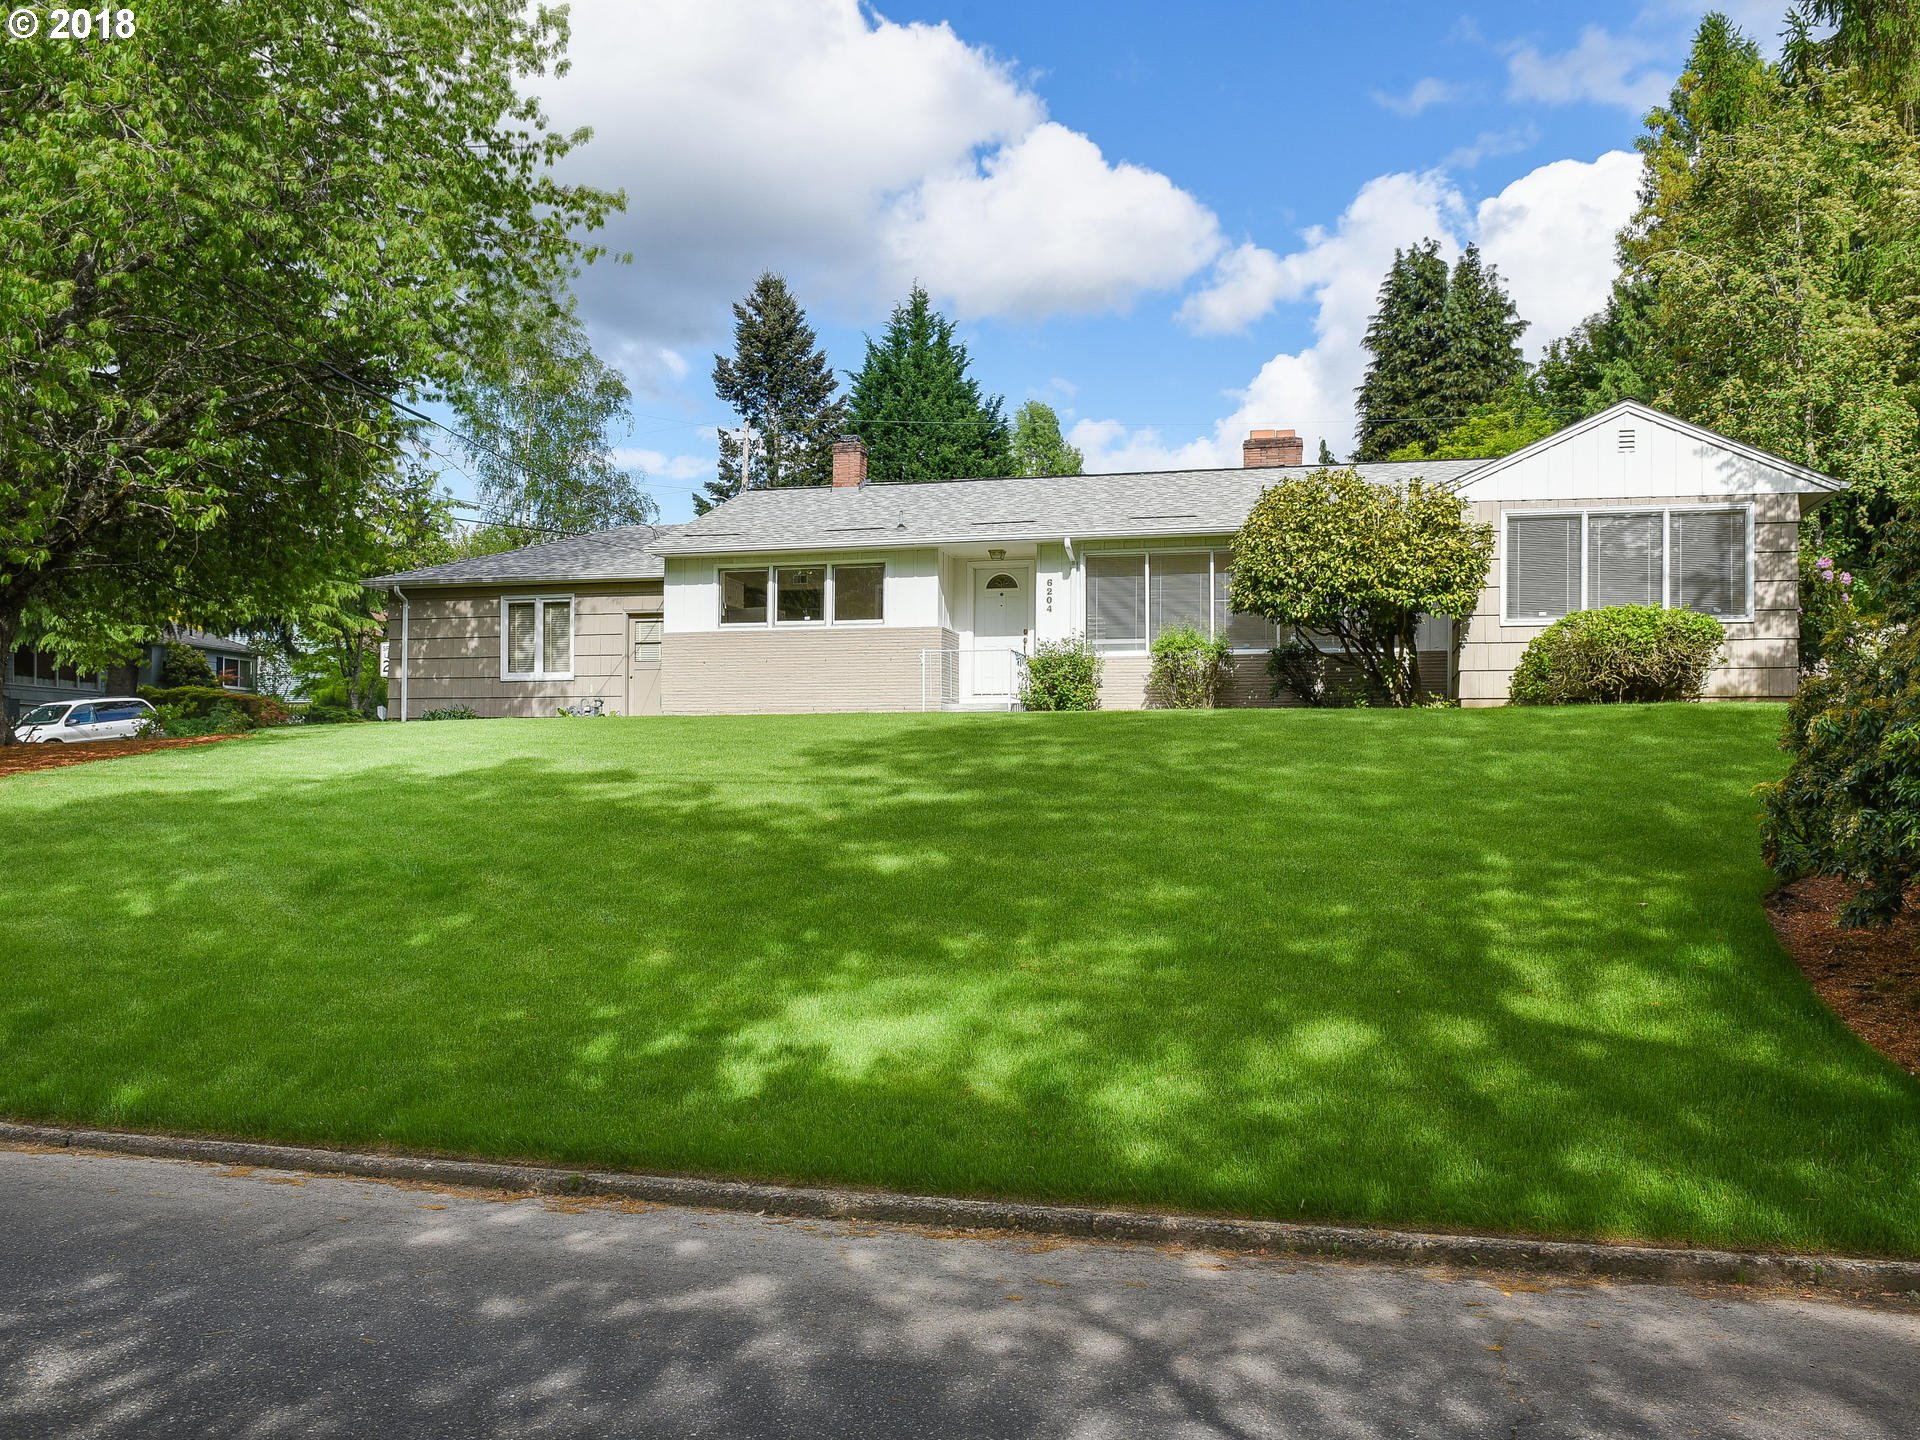 1594 sq. ft 2 bedrooms 1 bathrooms  House For Sale,Portland, OR